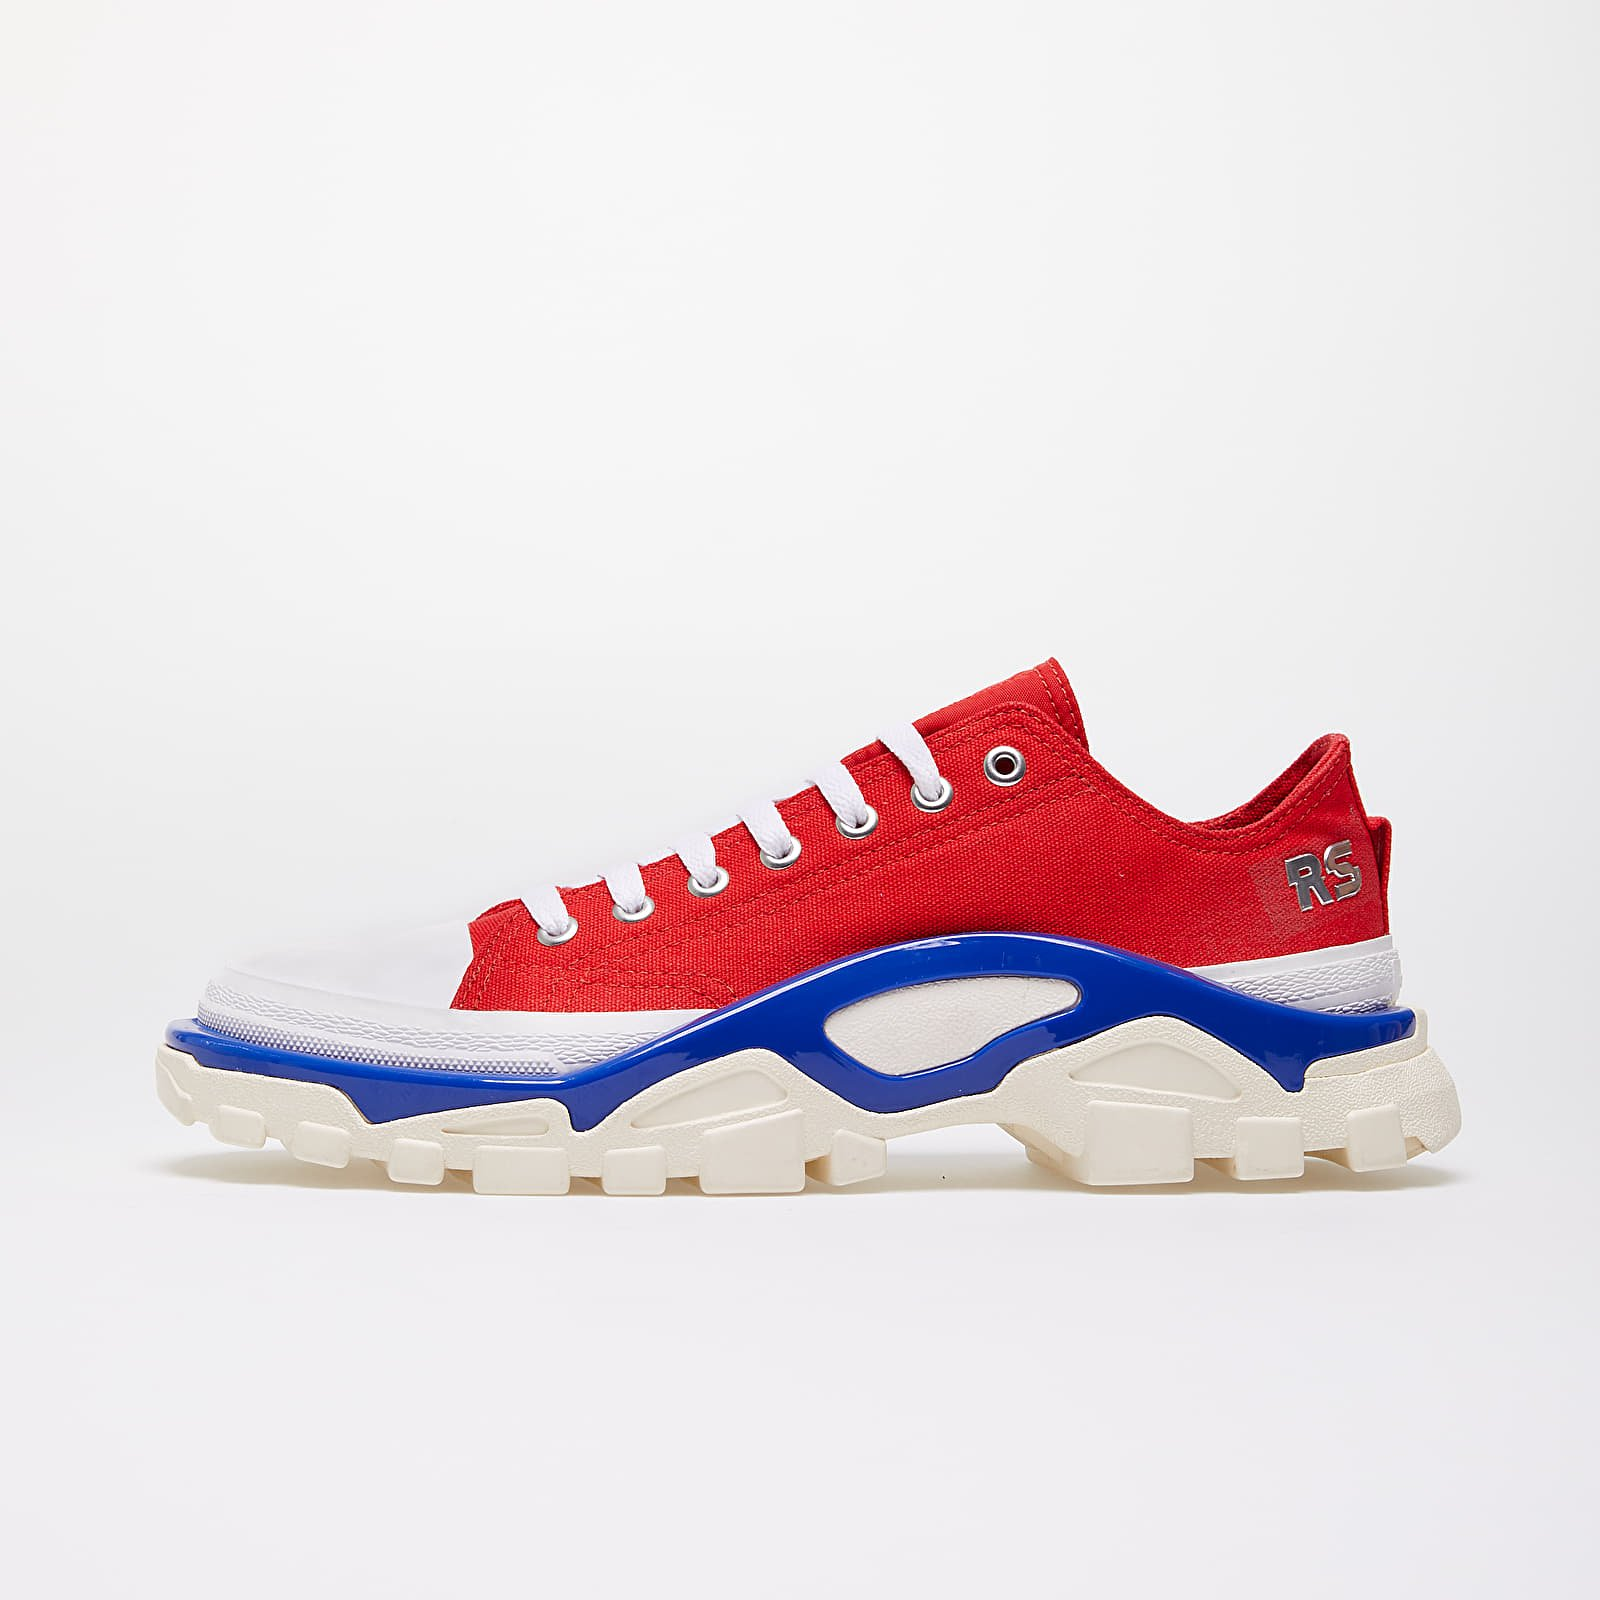 Men's shoes adidas x Raf Simons Detroit Runner Red/ Silver Metallic/ Bold Blue